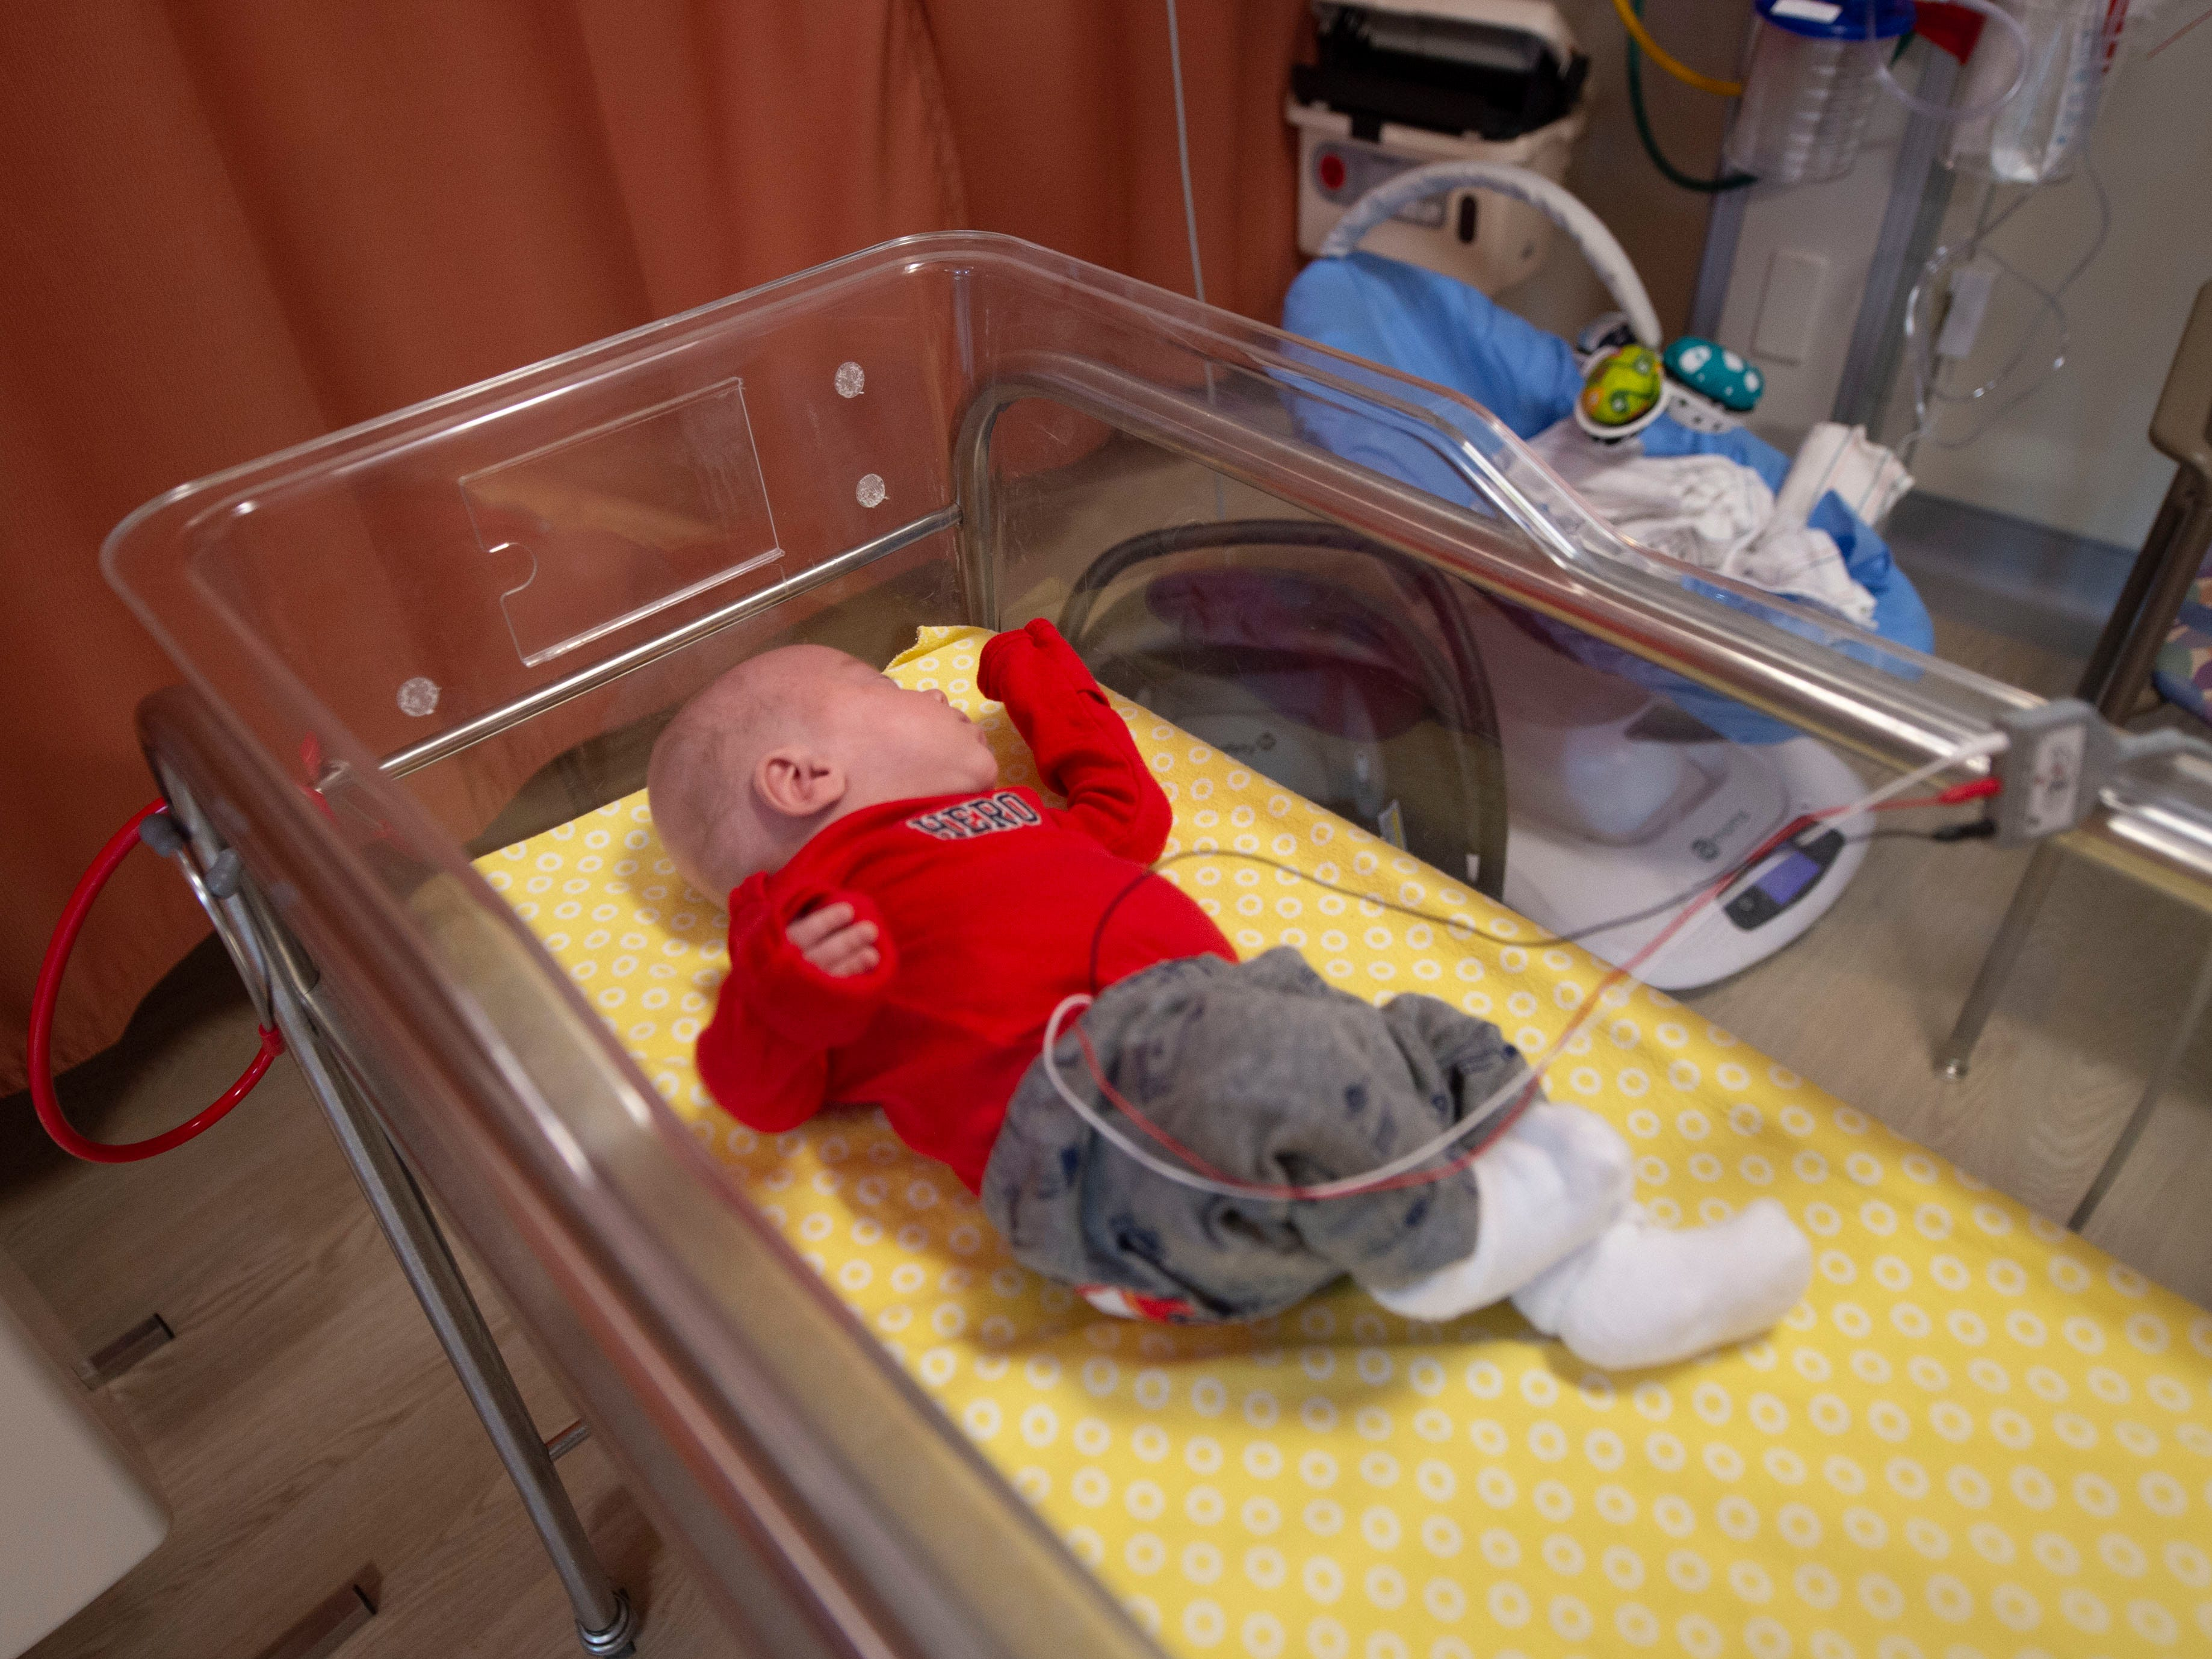 Liam McDannell in his crib inside the NICU at WellSpan York Hospital. Liam was born on New Year's Day, York County's first born child for 2019, he was only 25 weeks old. On Tuesday, April 9 he graduated from the NICU..